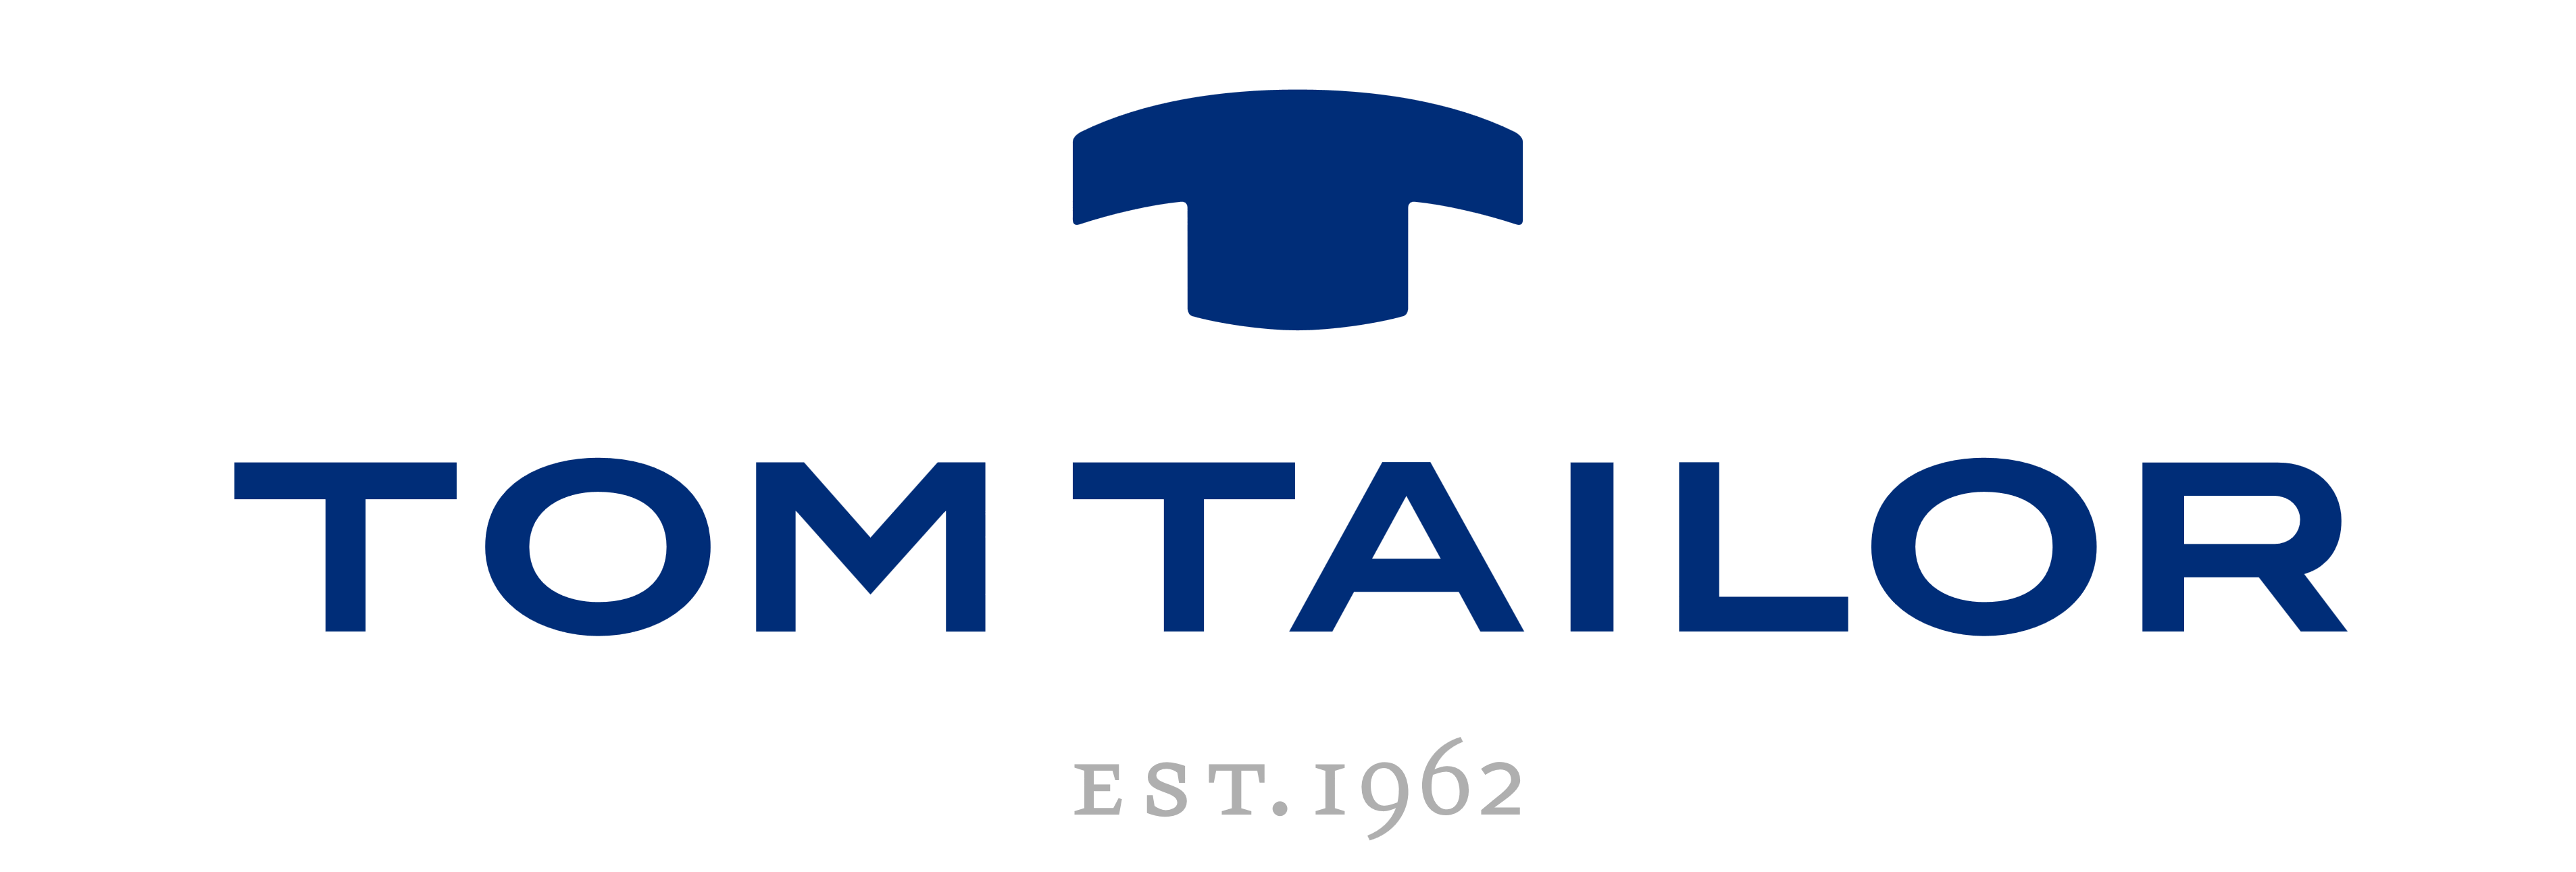 Tom Taolor Logo Tom Tailor